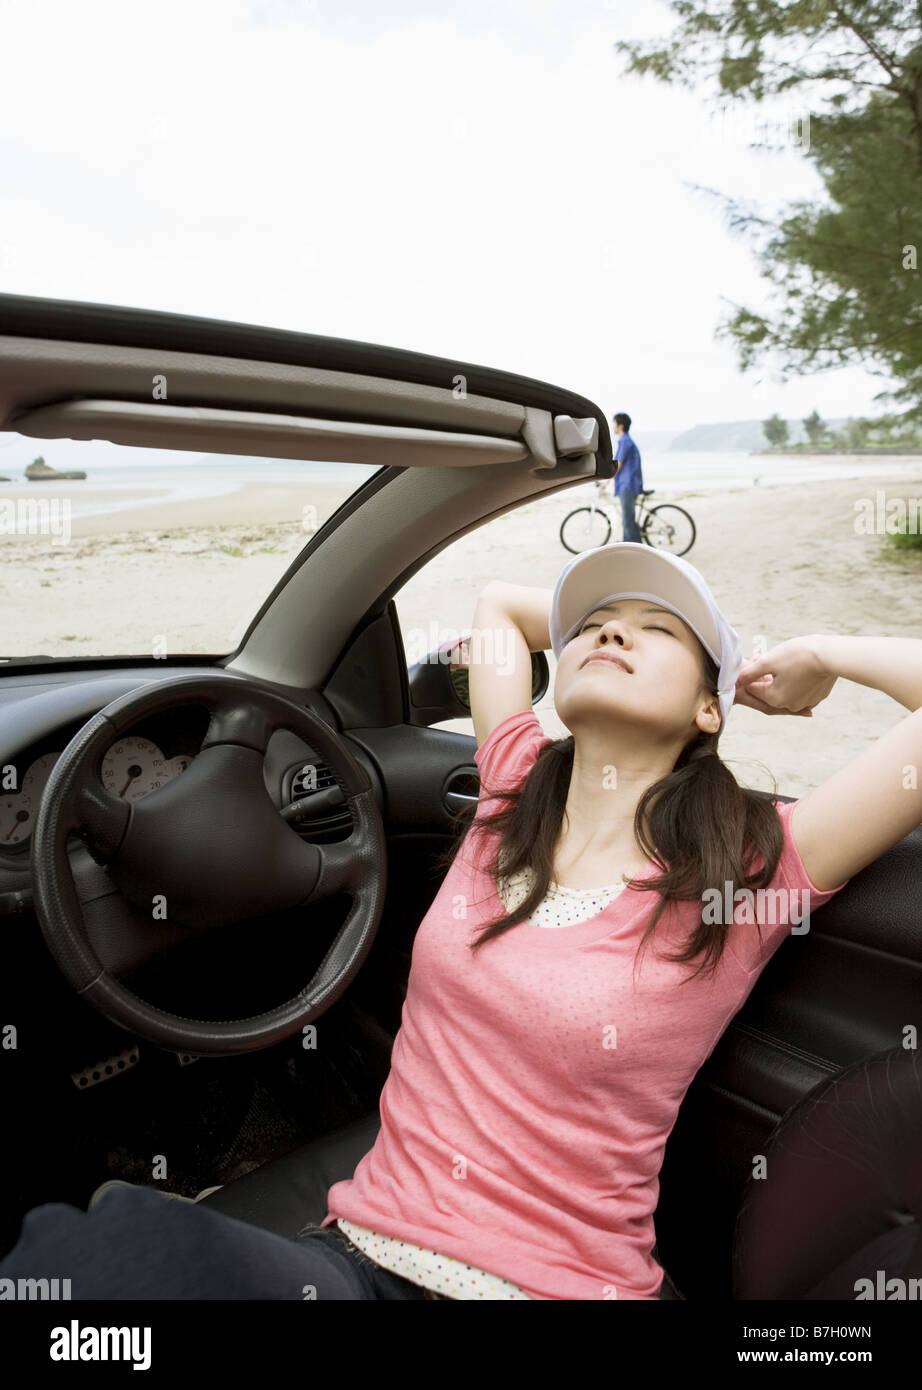 A woman in a convertible - Stock Image